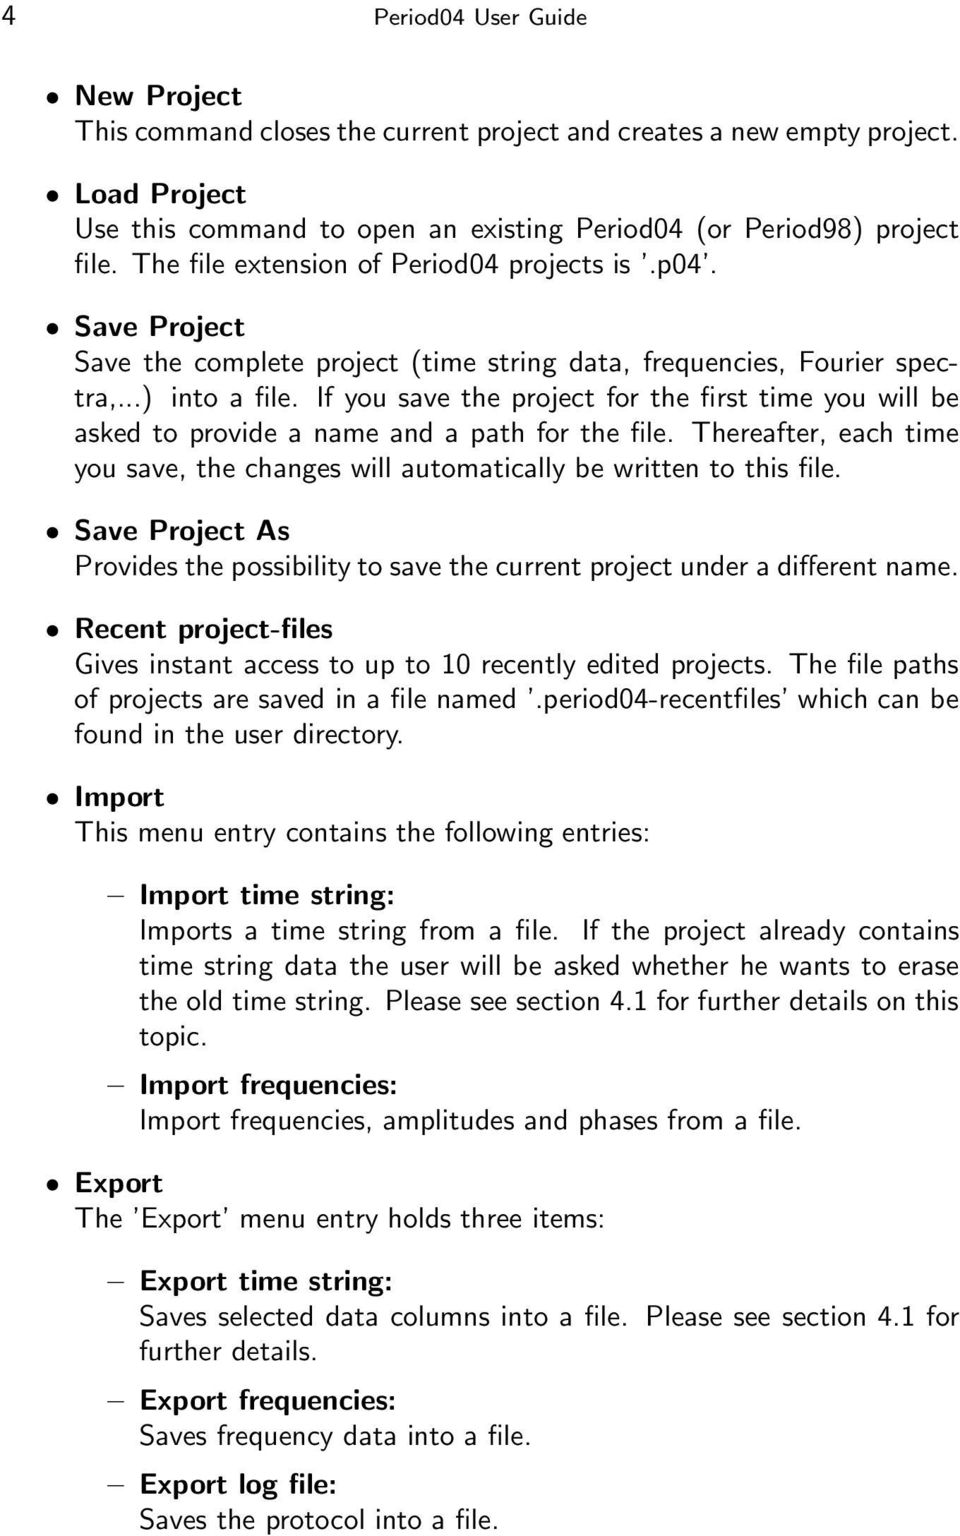 If you save the project for the first time you will be asked to provide a name and a path for the file. Thereafter, each time you save, the changes will automatically be written to this file.